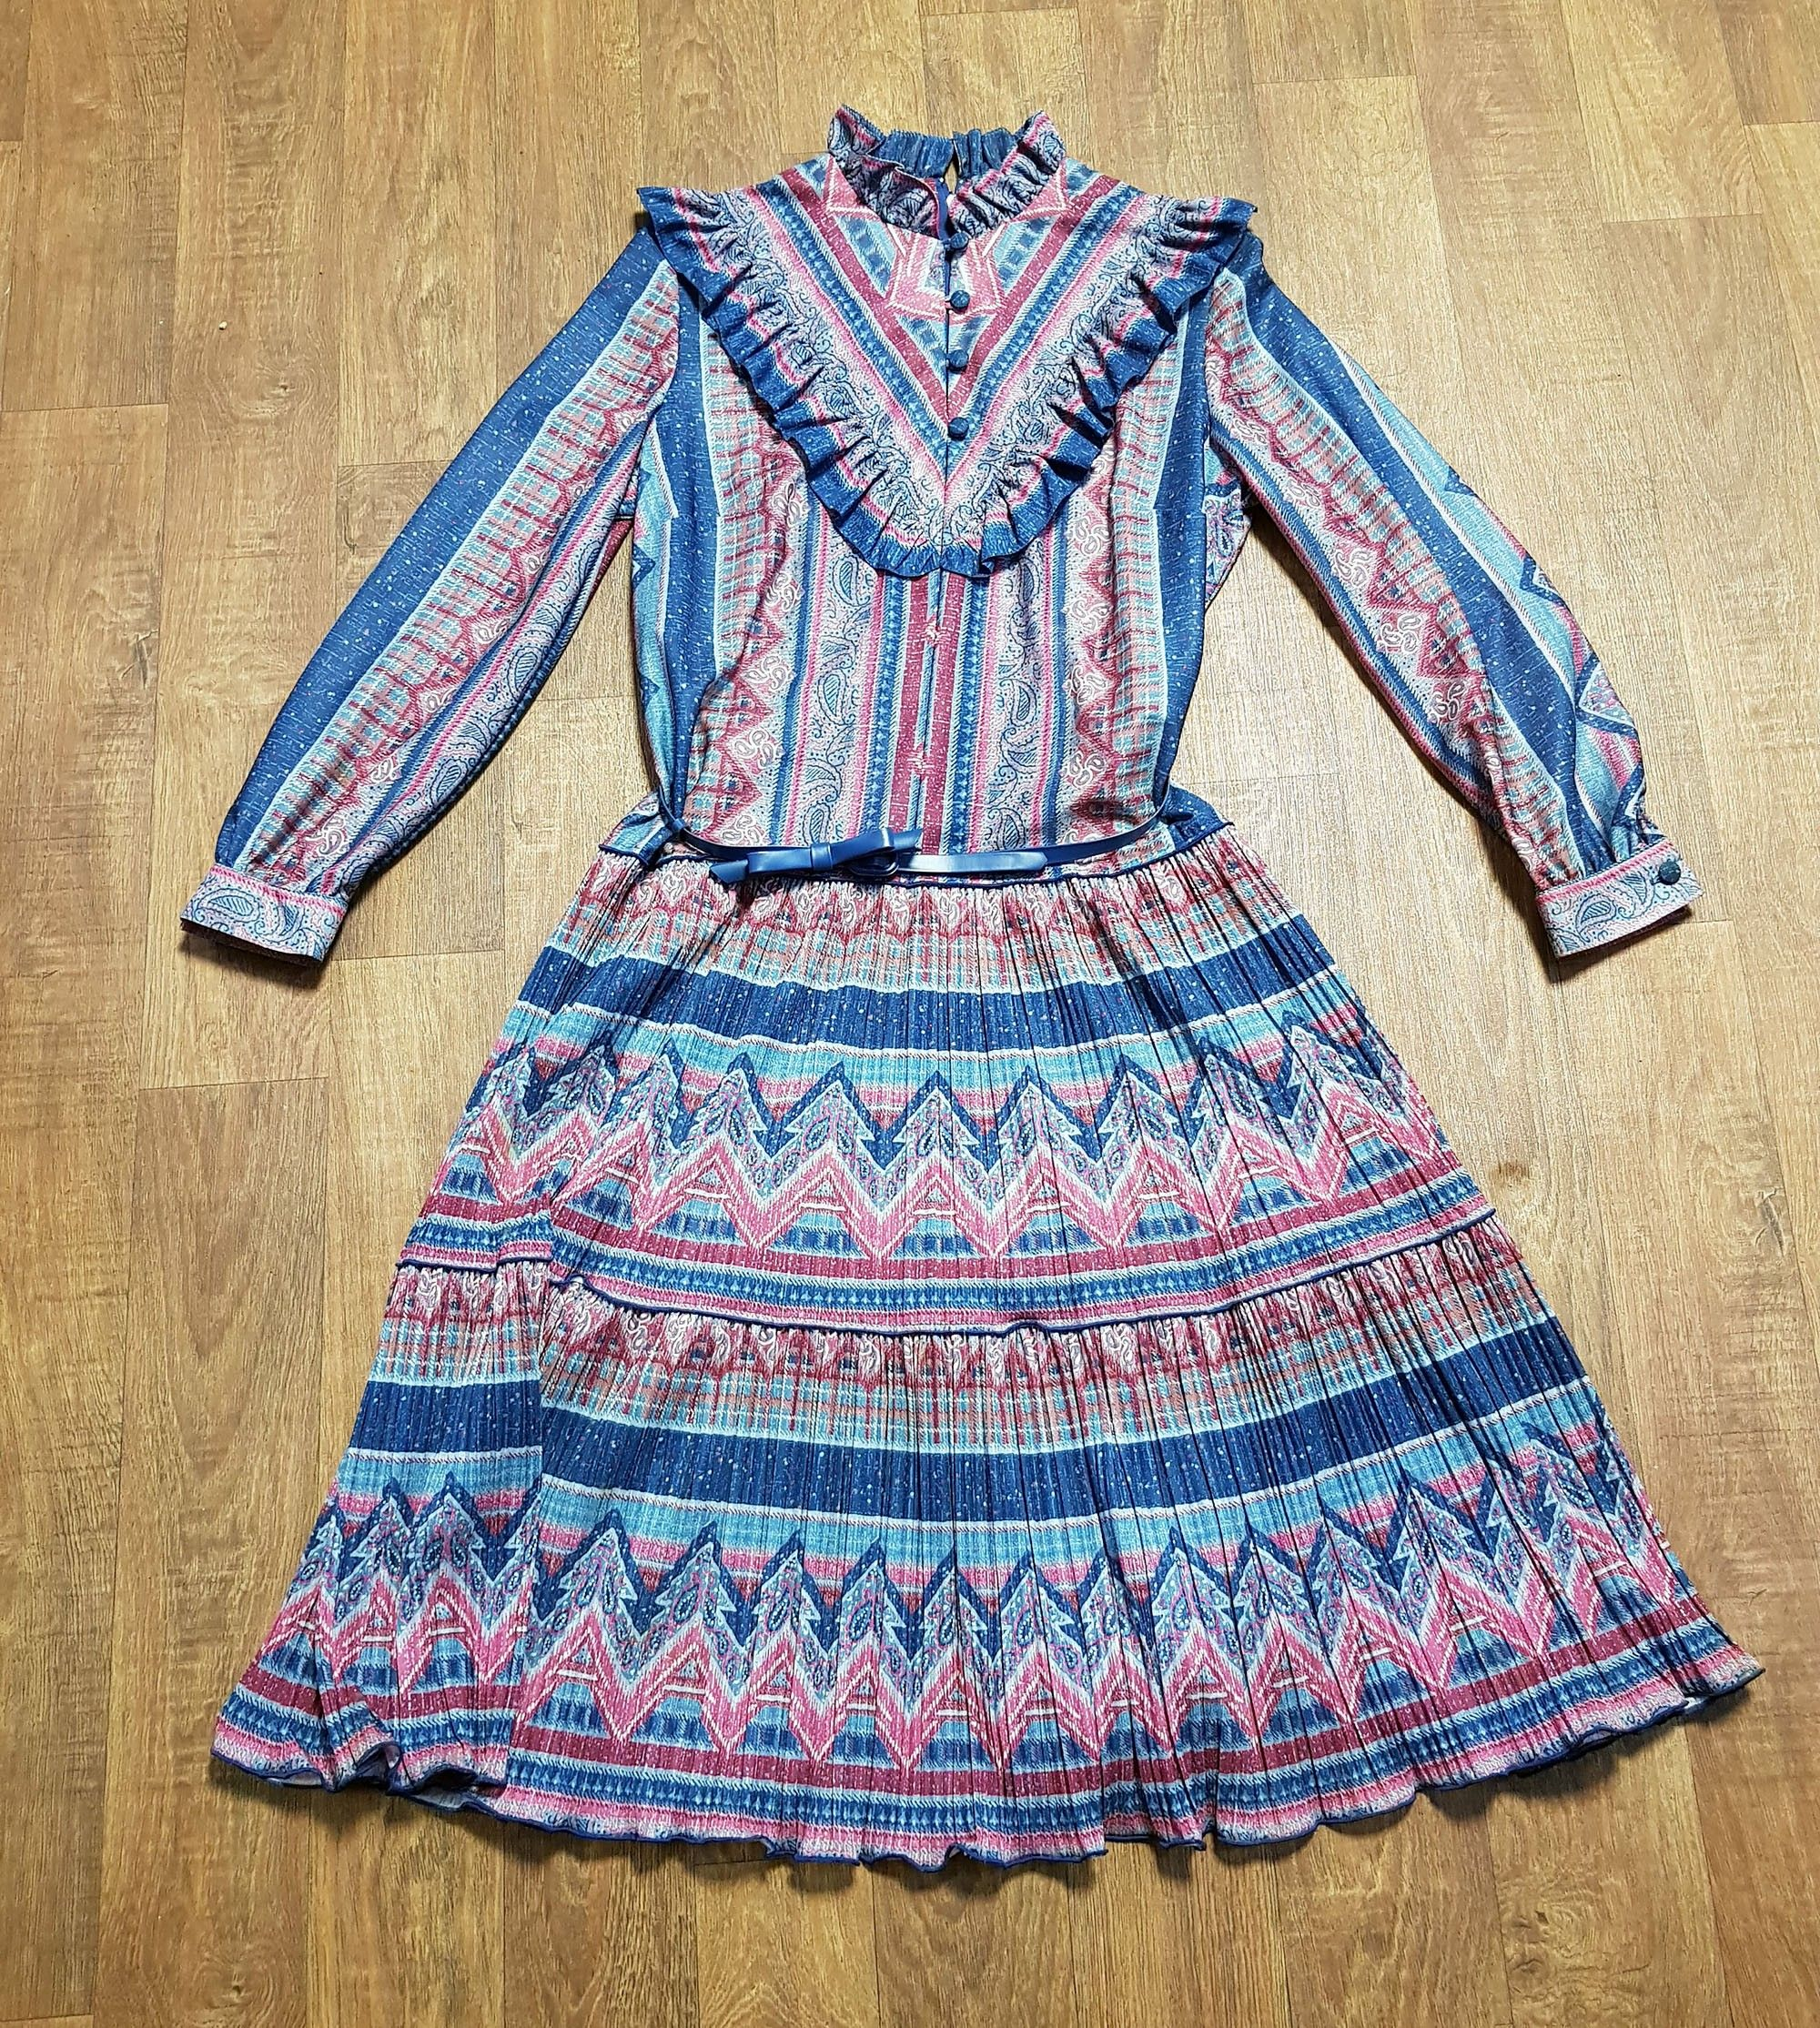 Vintage Dress | 1970s Vintage Navy & Wine Victoriana Dress UK Size 14